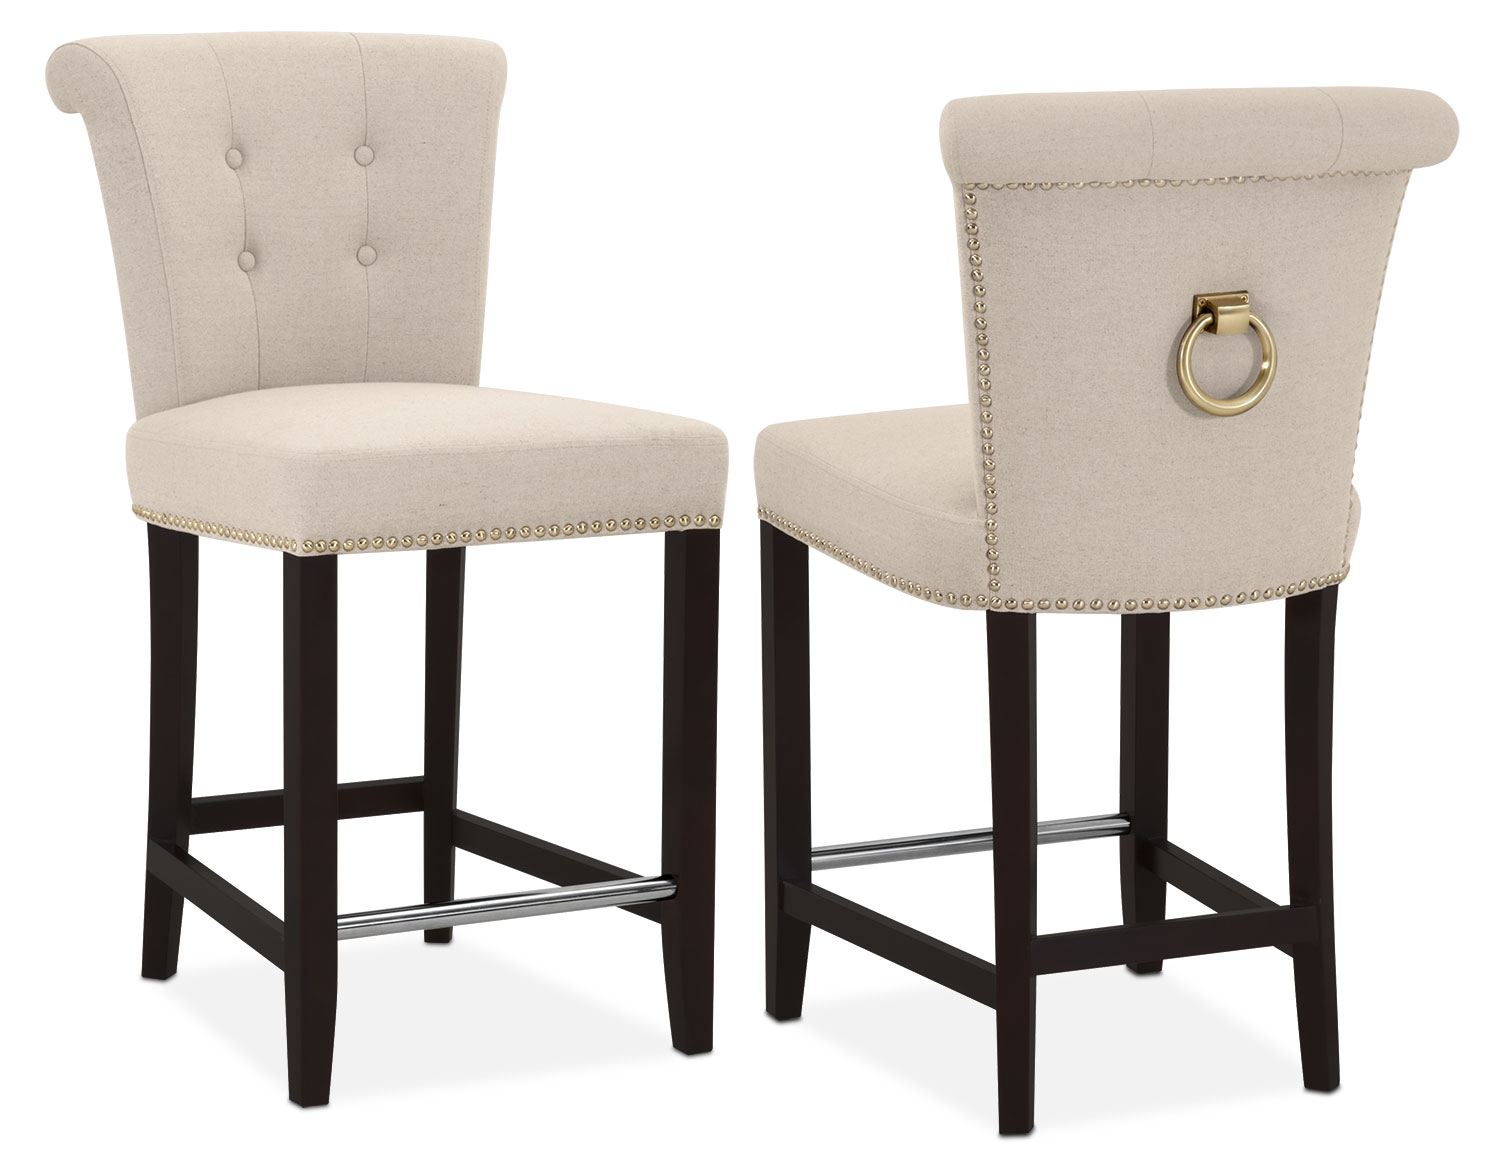 counter height chair grey table and chairs calloway stool natural gold american signature click to change image